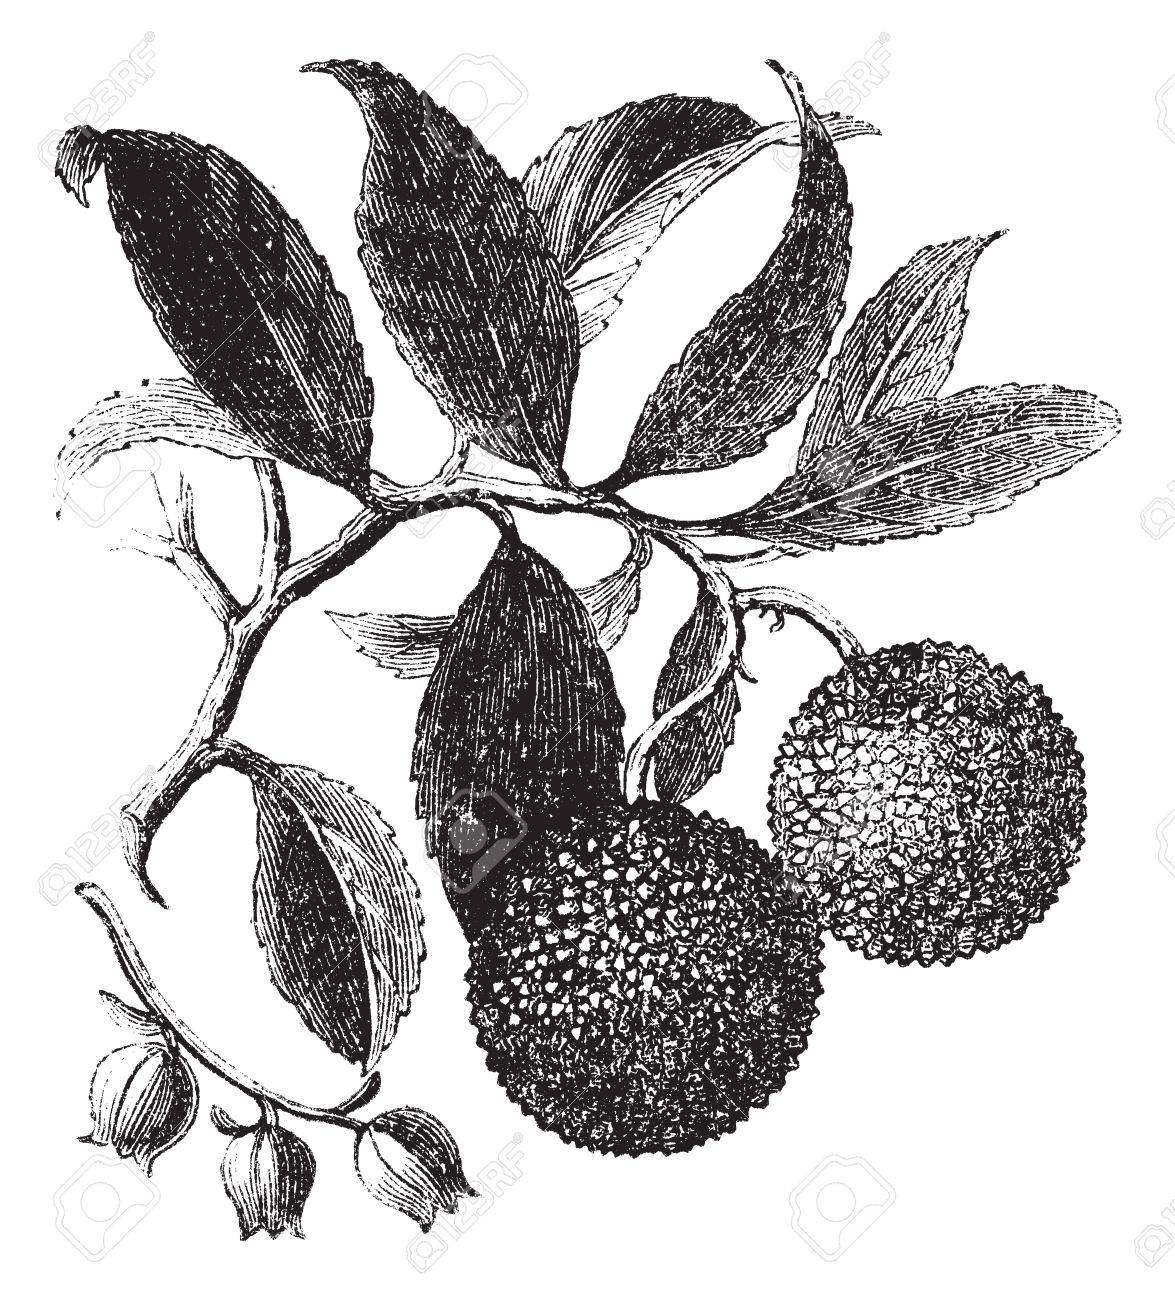 Strawberry tree or madrono or arbutus unedo vintage engraving strawberry tree or madrono or arbutus unedo vintage engraving old engraved illustration of a altavistaventures Image collections